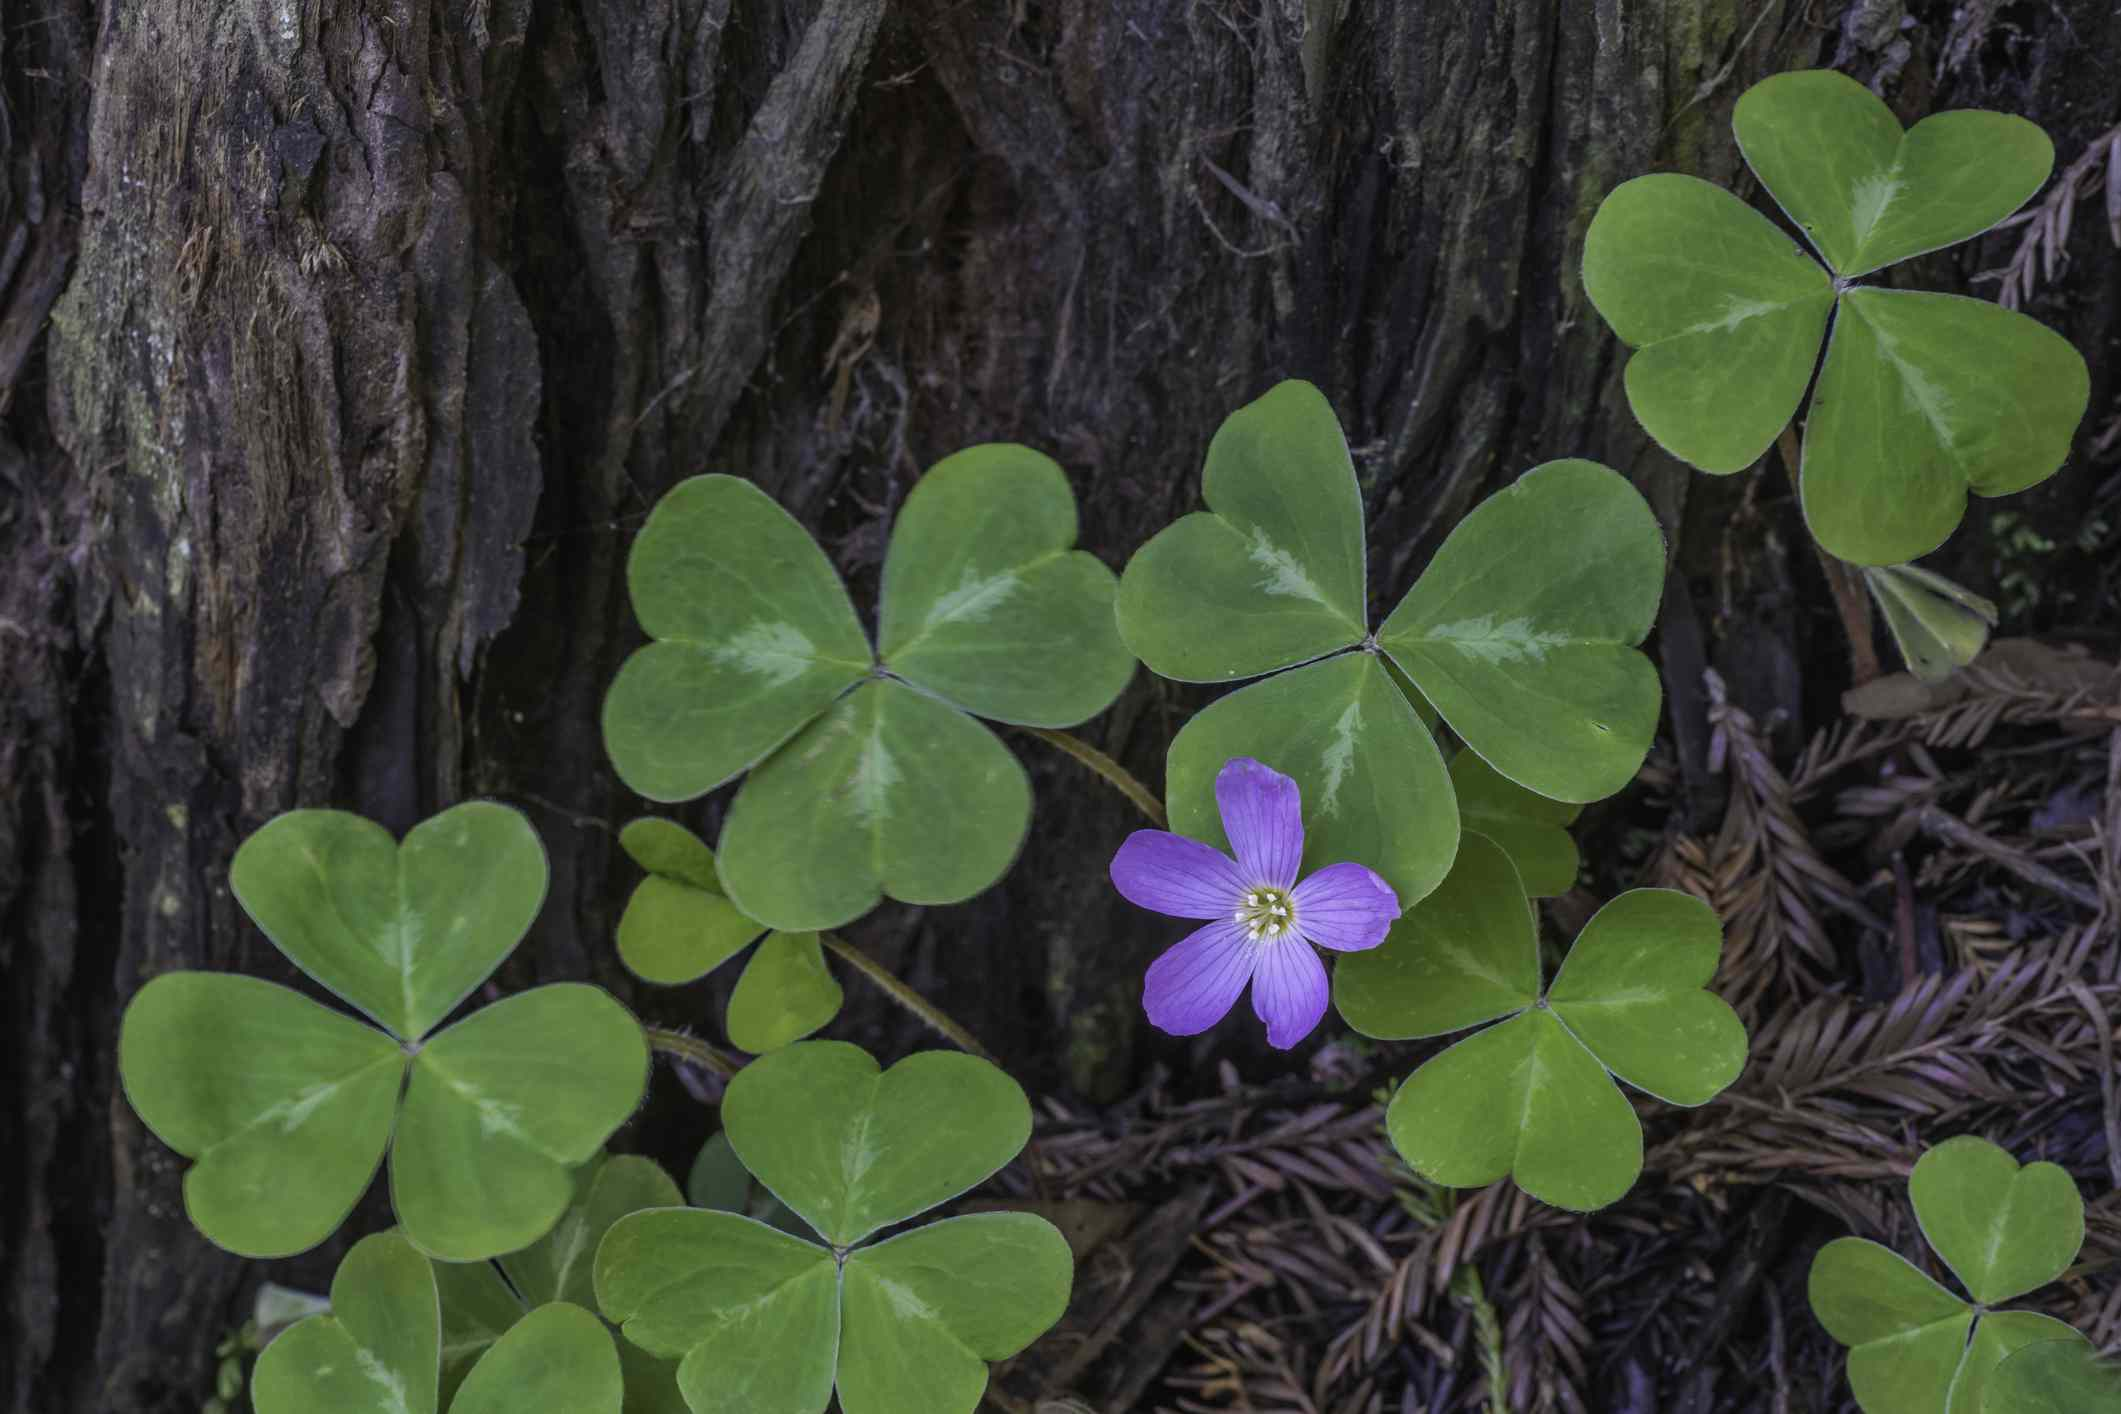 Redwood sorrel with one flour growing at the base of a tree